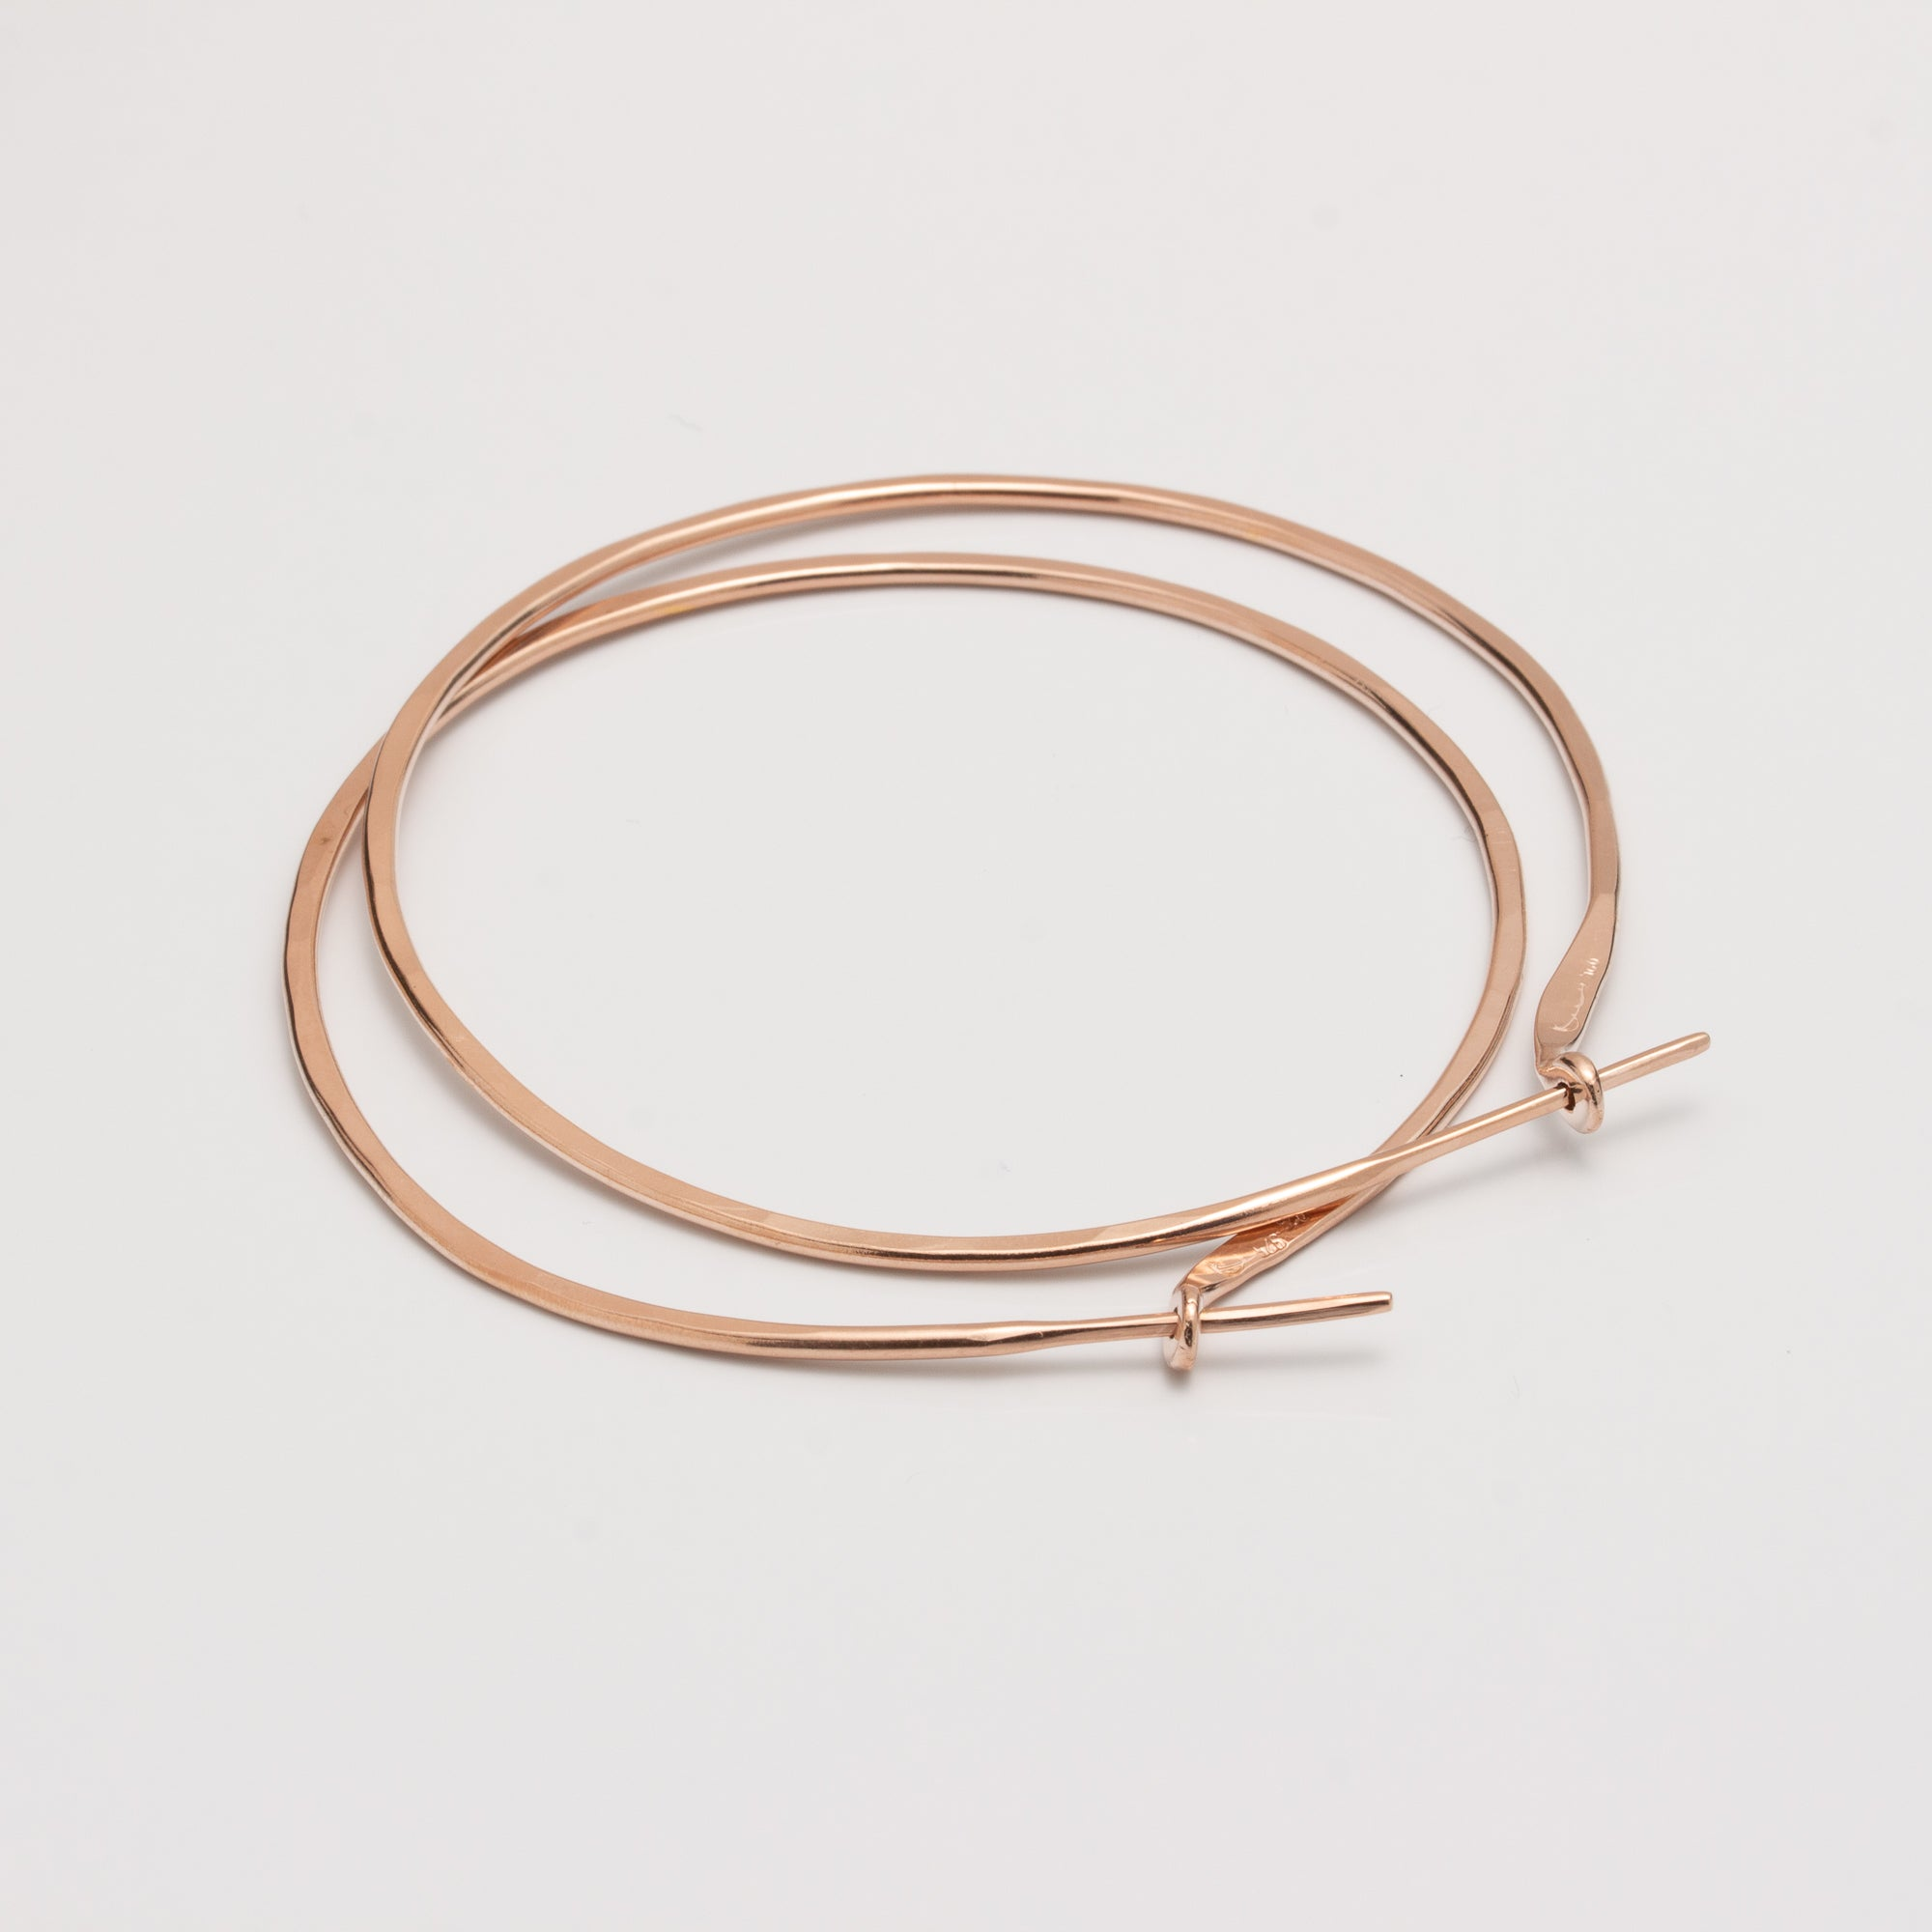 HOOPS // MEDIUM // ROUND // ROSE GOLD